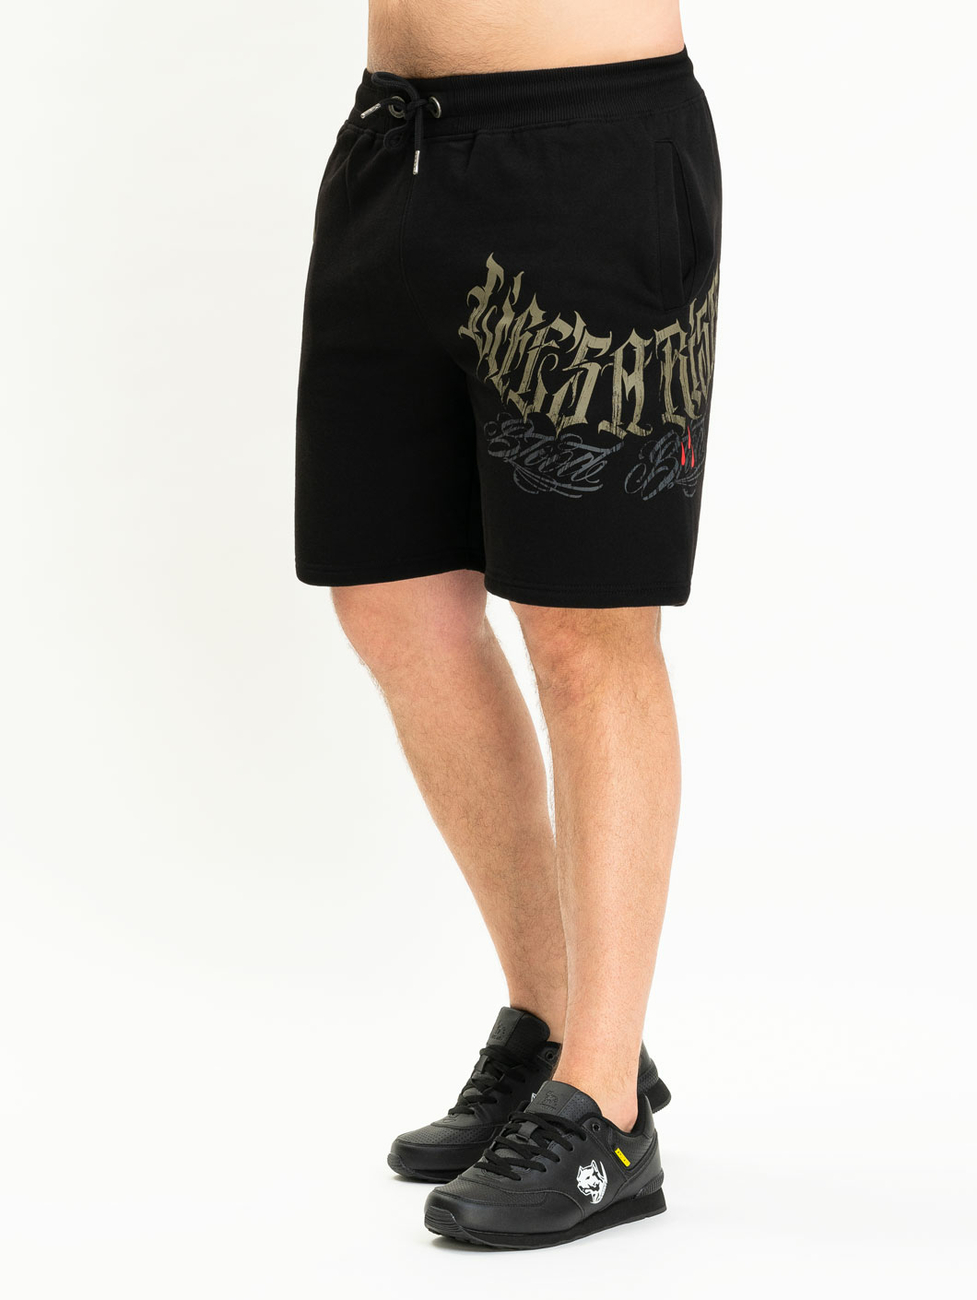 Blood In Blood Out Miembros Sweatshorts L